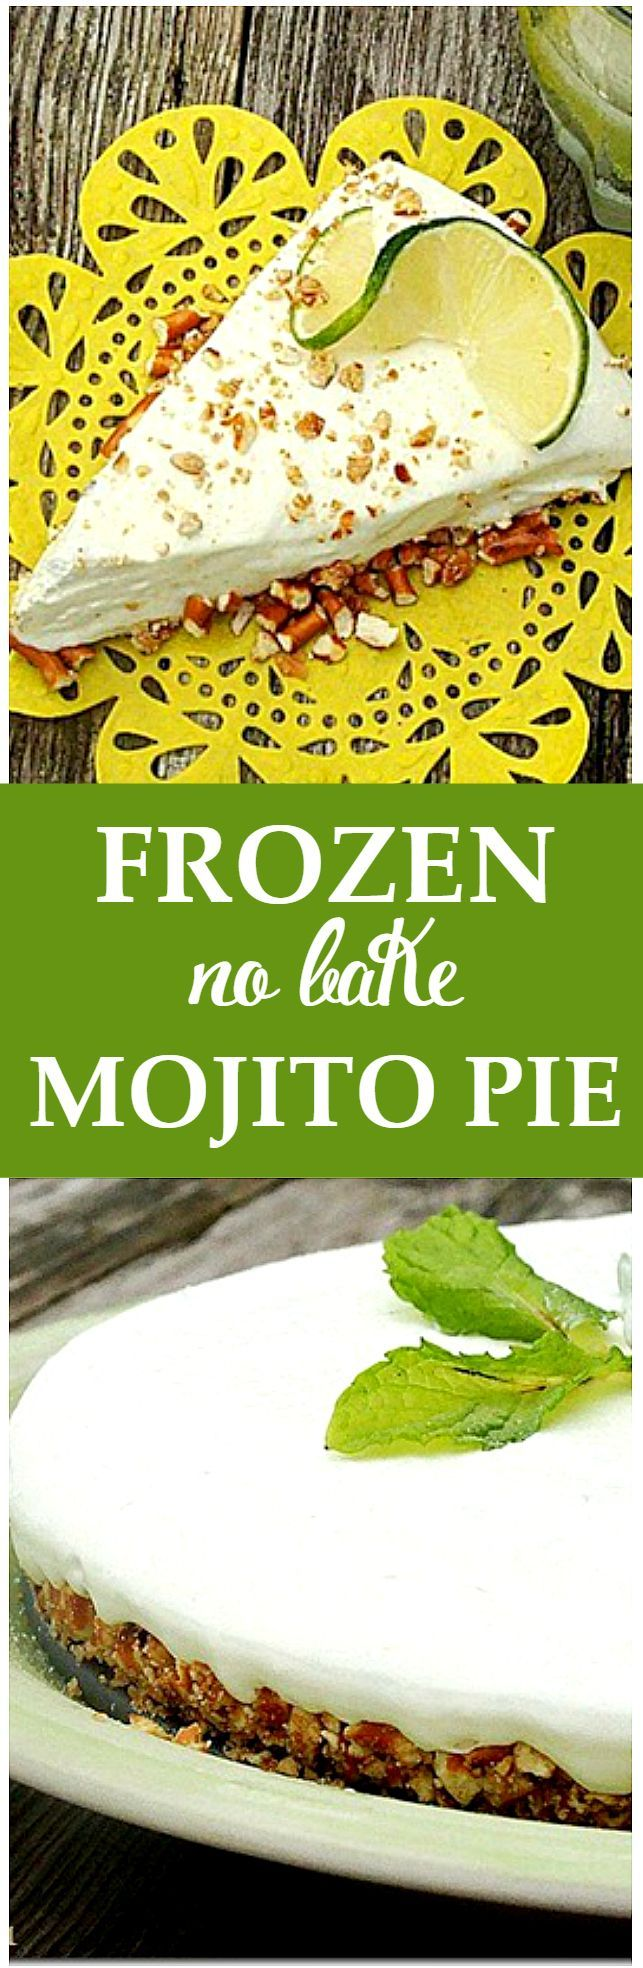 Frozen Mojito Pie - Inspired by the classic drink, this recipe for Frozen Mojito Pie is a must make, again and again!